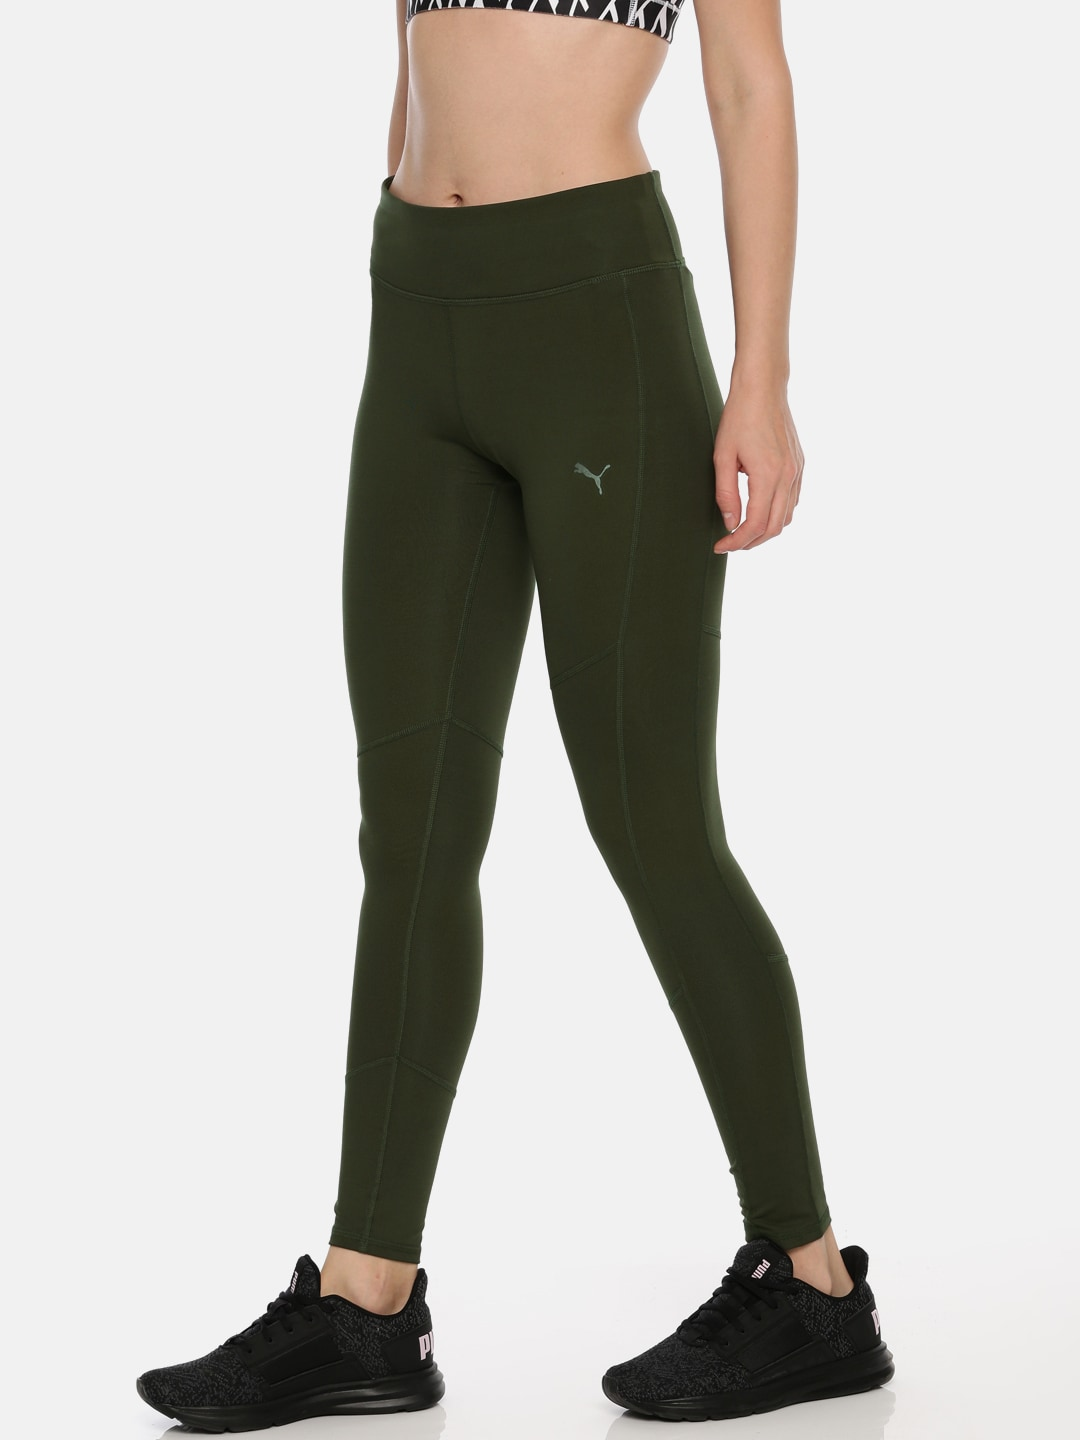 da5a66c2877ca0 Puma Elastane Tights - Buy Puma Elastane Tights online in India